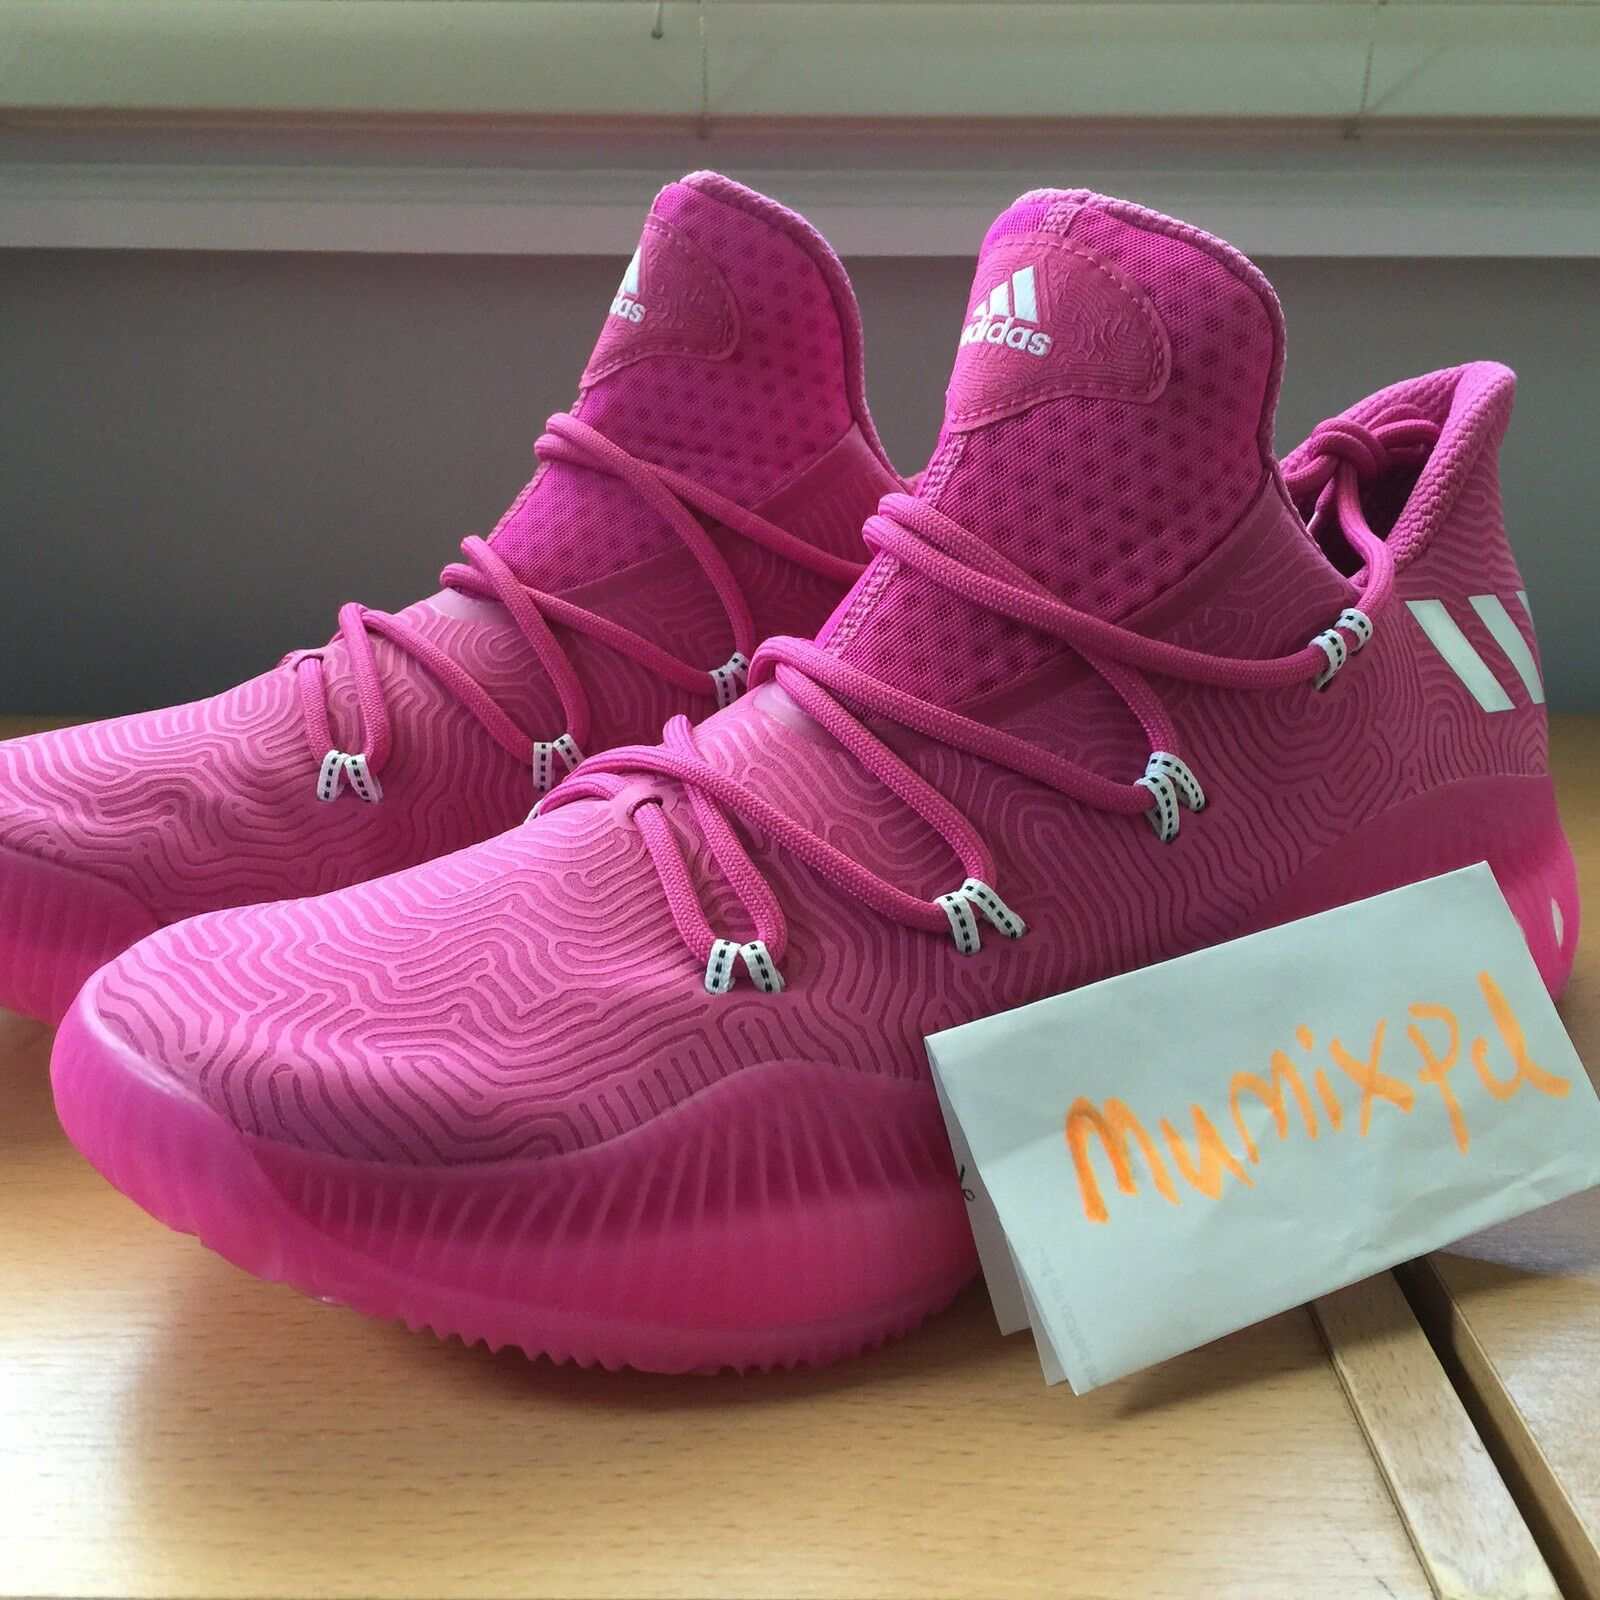 ADIDAS CRAZY EXPLOSIVE LOW byw NBA BCA sample pink pe boost BY3151 New Sz 13